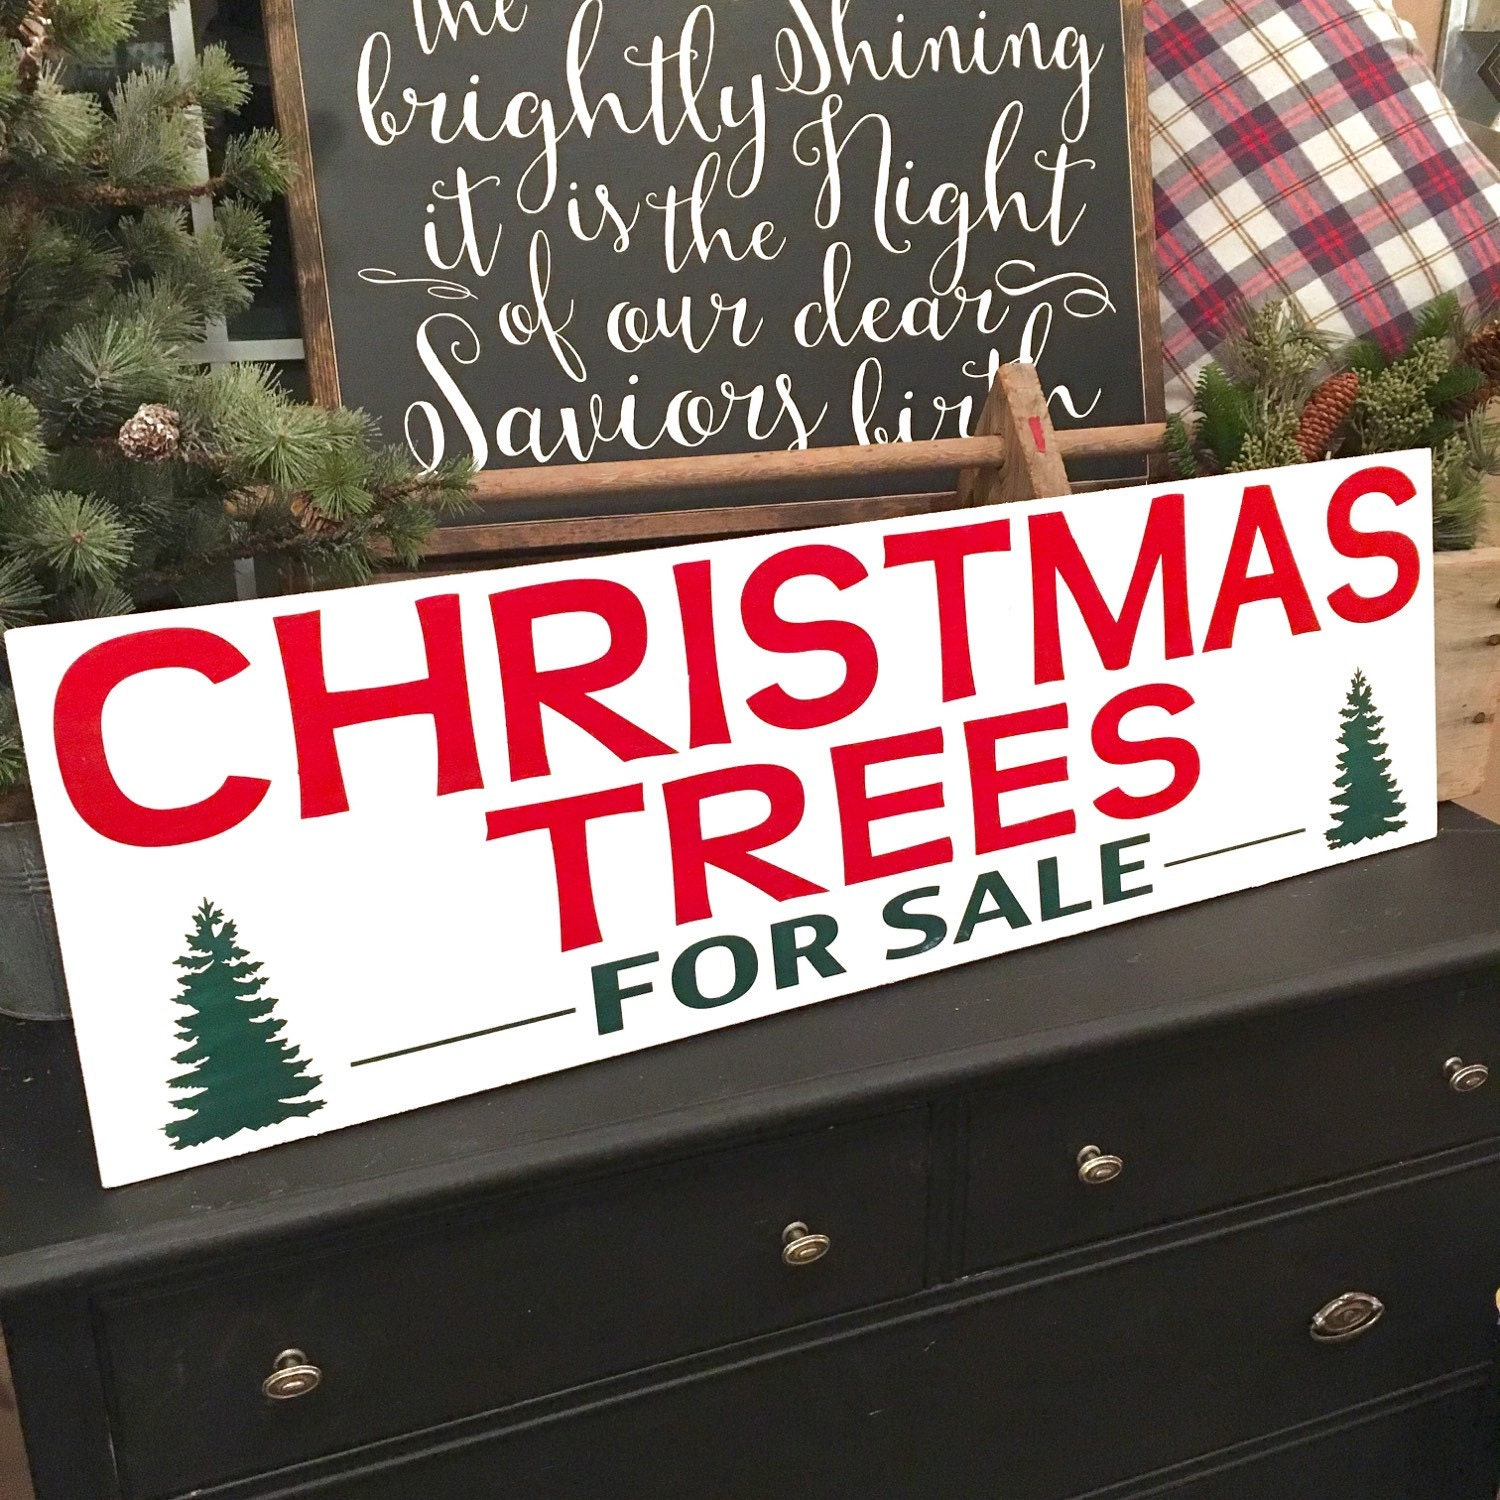 CHRISTMAS TREES For SALE Joanna Gaines By BunkhouseandBroadway